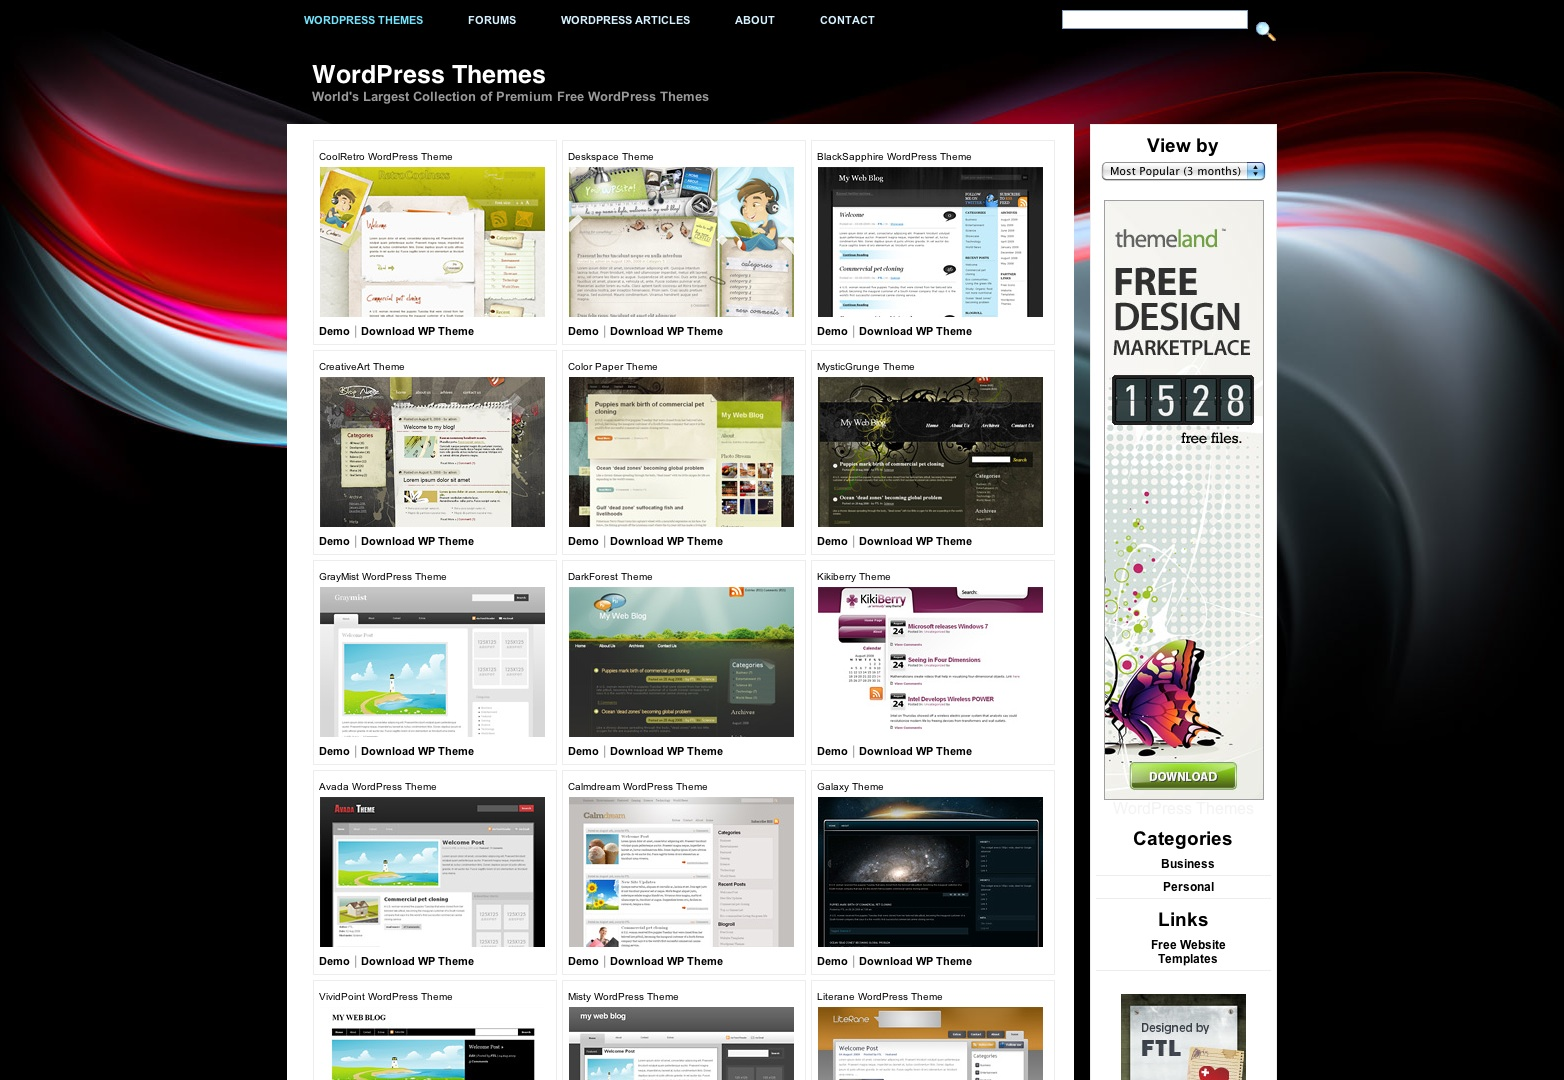 themes and templates melo in tandem co